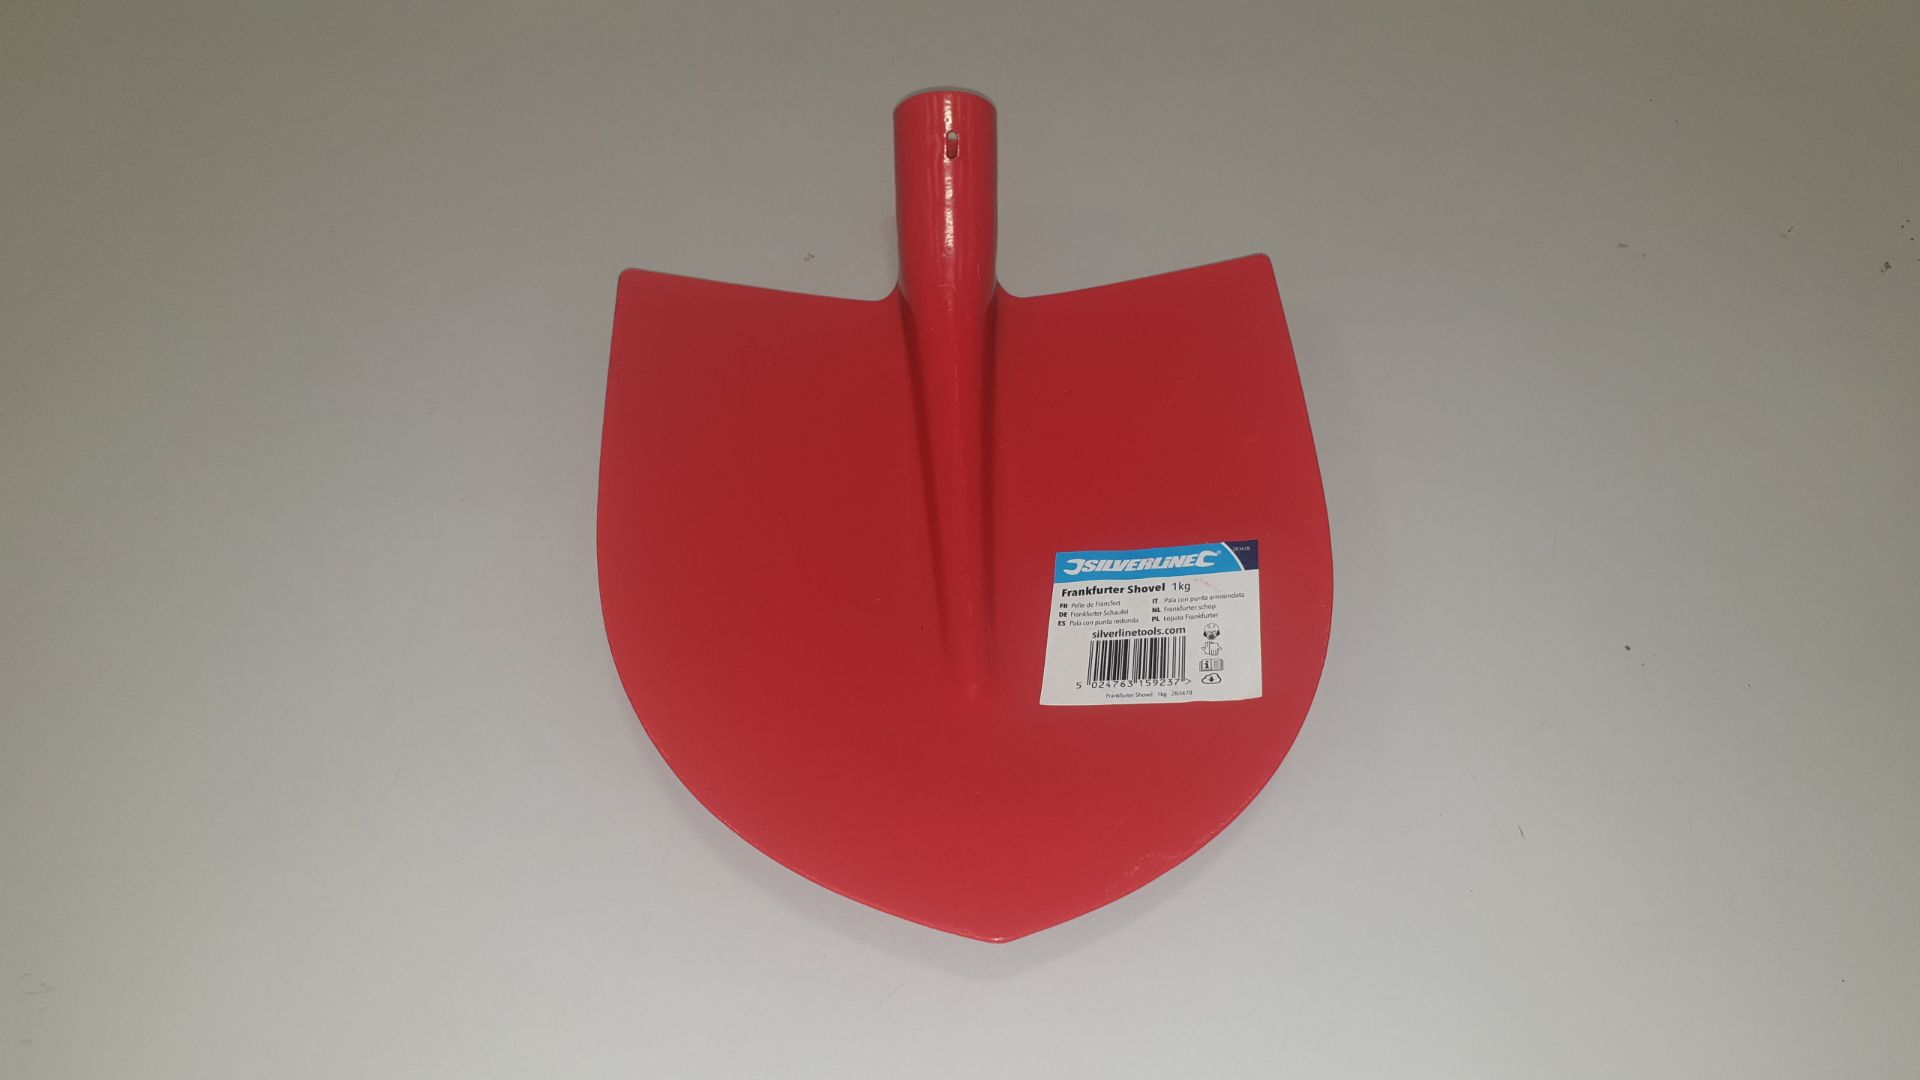 Lot 325 - 60 X BRAND NEW SILVERLINE CONTRACTORS FRANKFURTERSHOVEL 1KG (PROD CODE 283478) TRADE PRICE £5.15